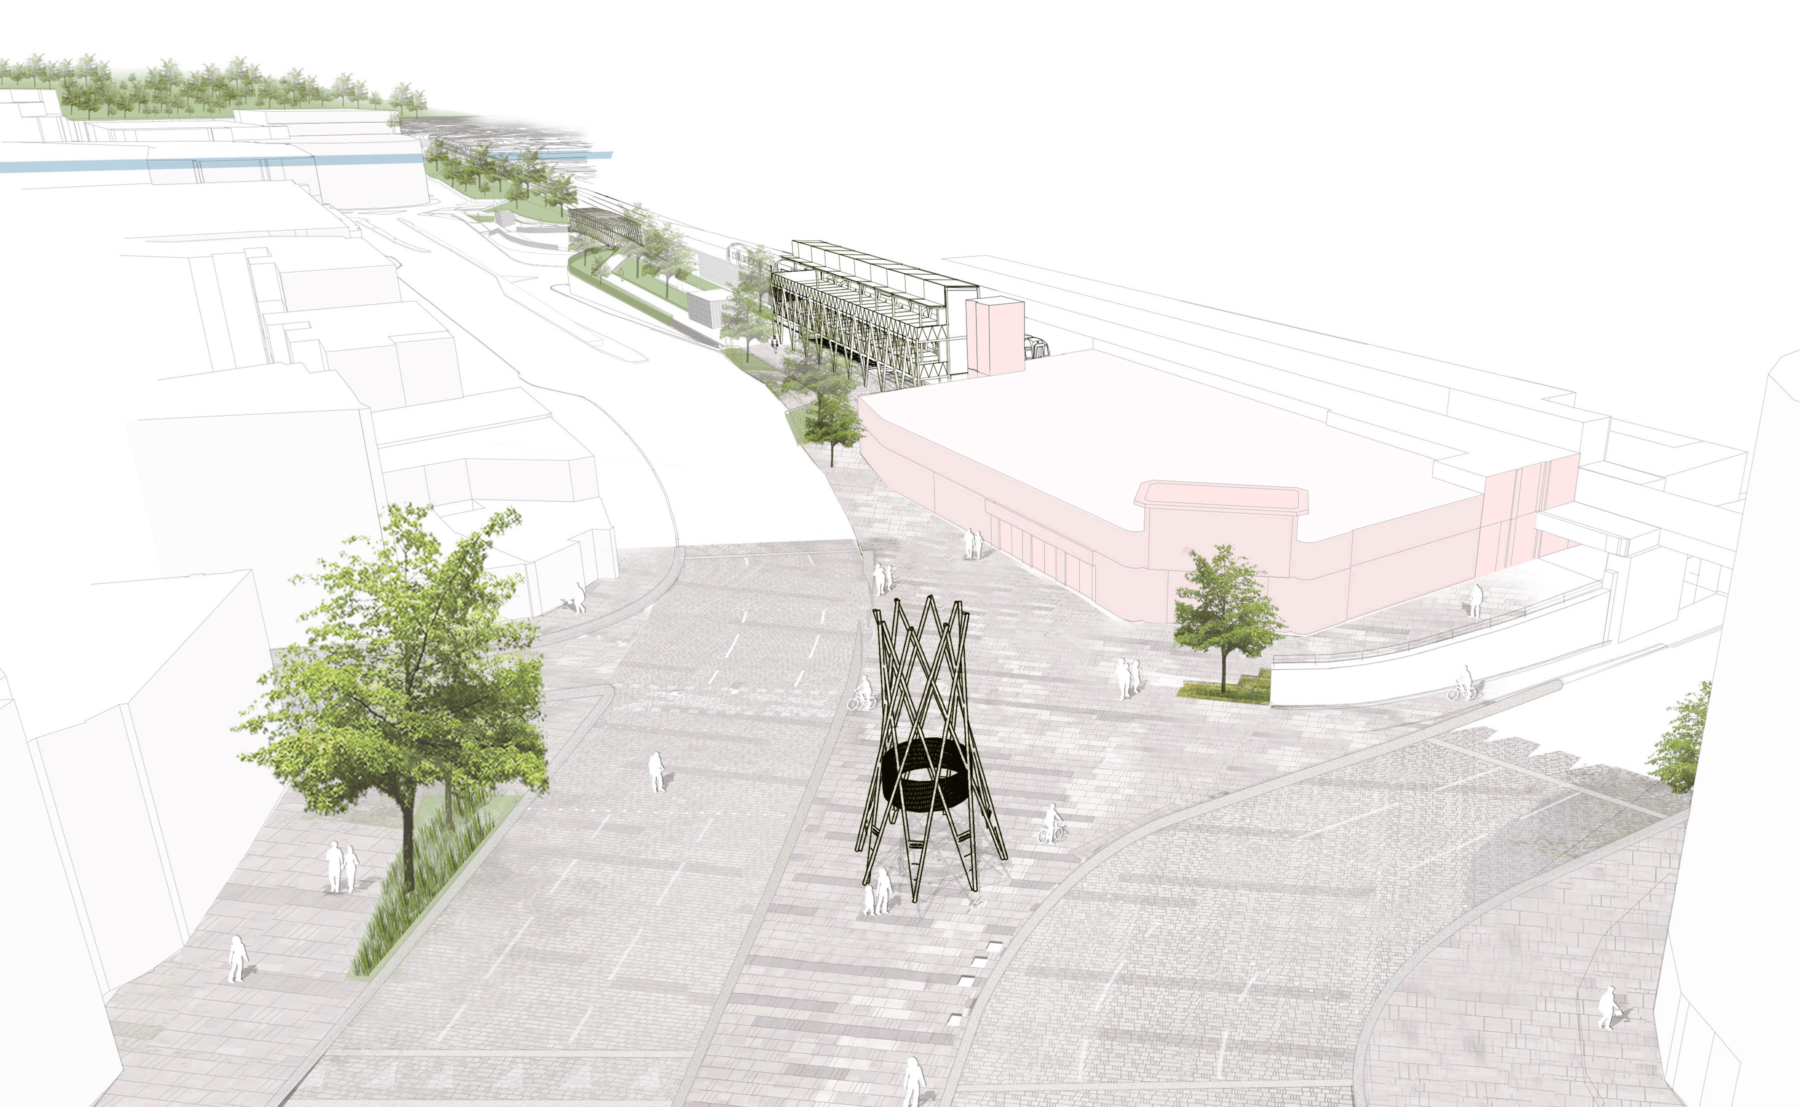 Sarah-Wigglesworth-Architects Kingston-Mini-Holland Context Overall 3600